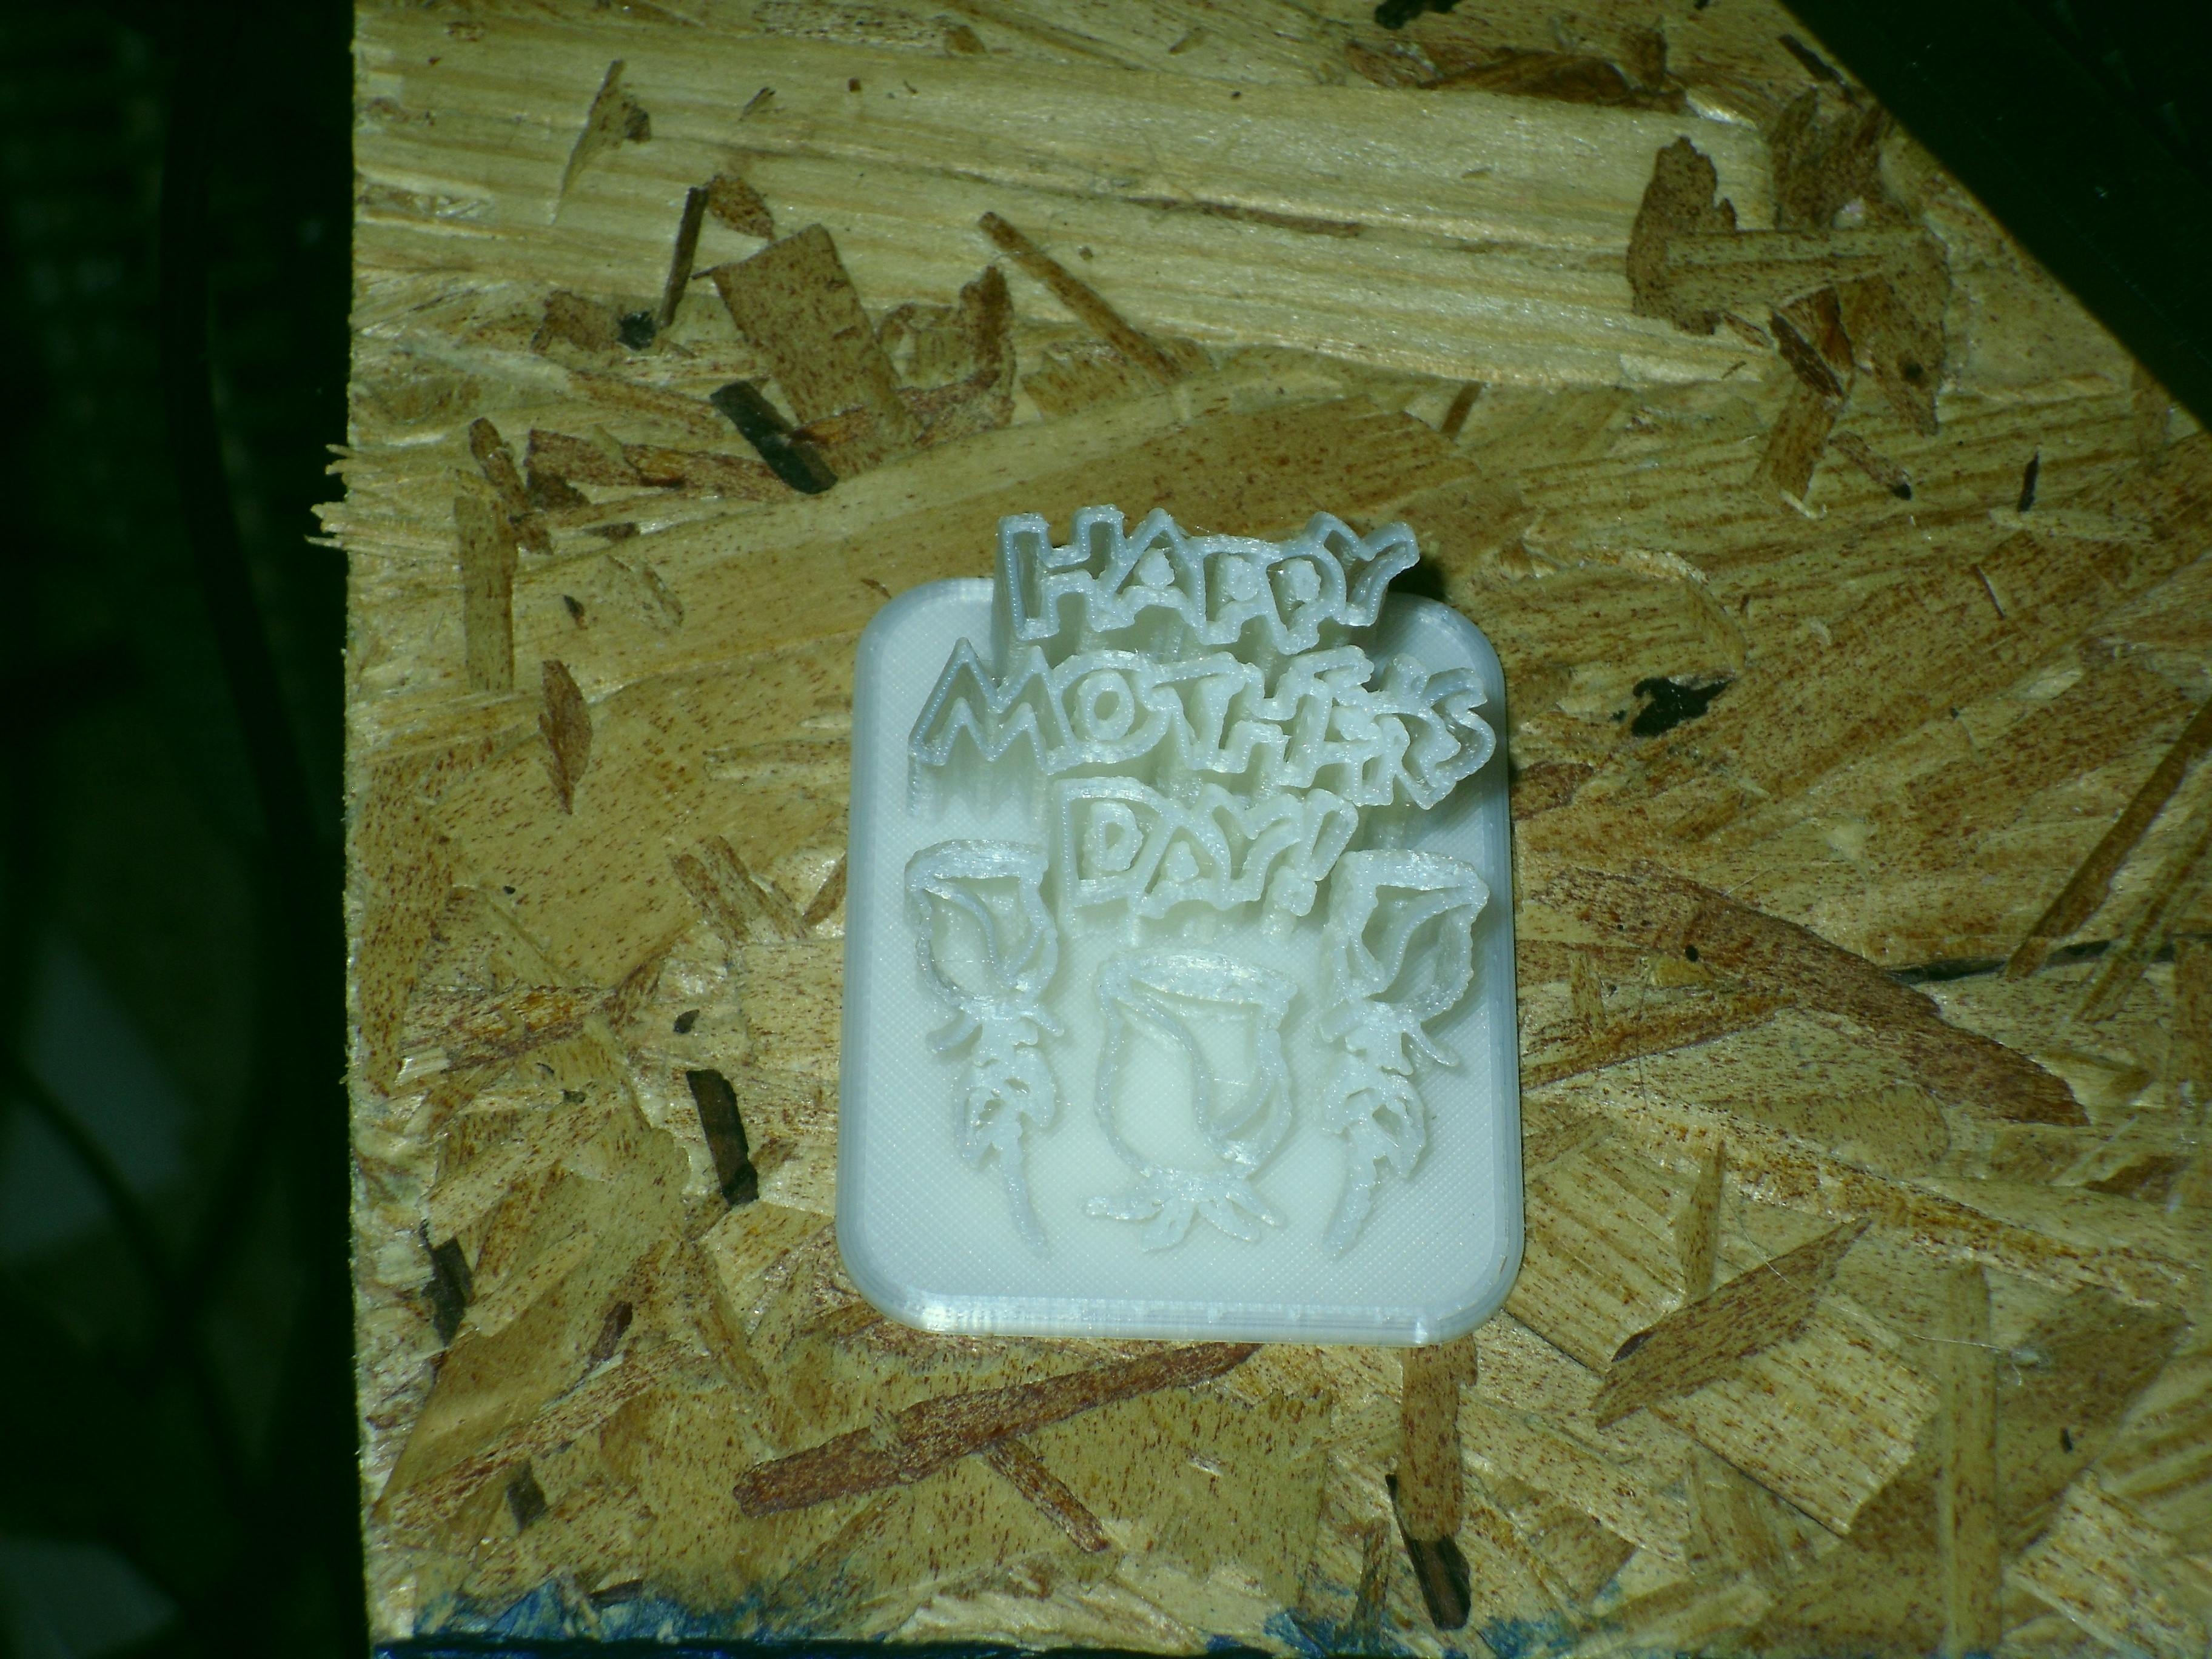 SDC10010.JPG Download free STL file happy mothersday 2 files 1 small 1 large • 3D printing object, liggett1